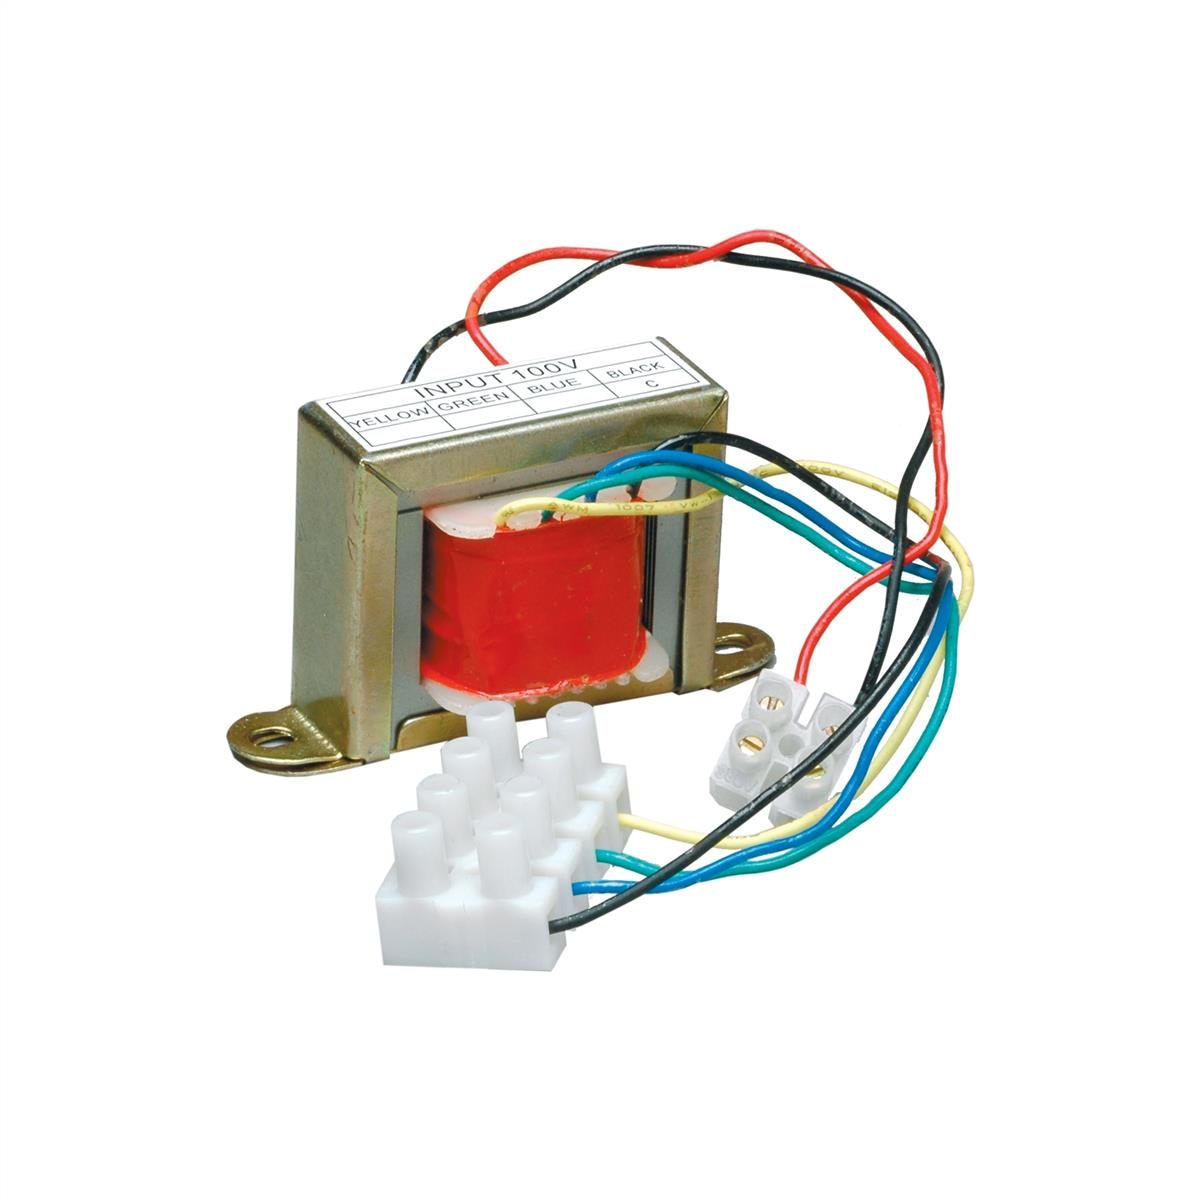 8 ohms to 100 volt transformer, power taps: 20-10-5-2,5W